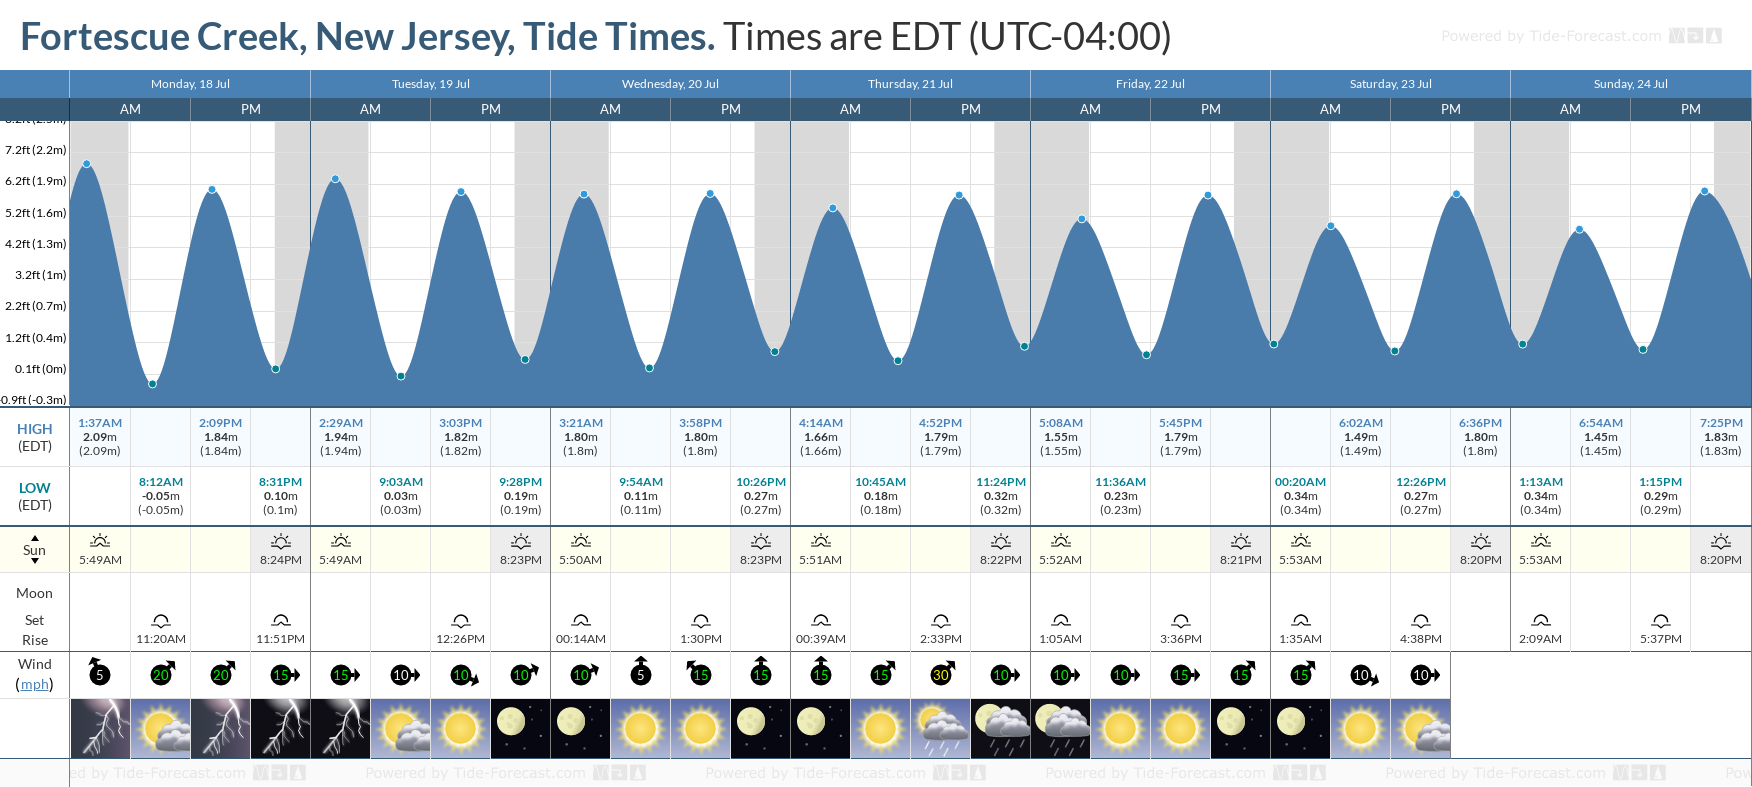 Fortescue Creek, New Jersey Tide Chart including high and low tide tide times for the next 7 days